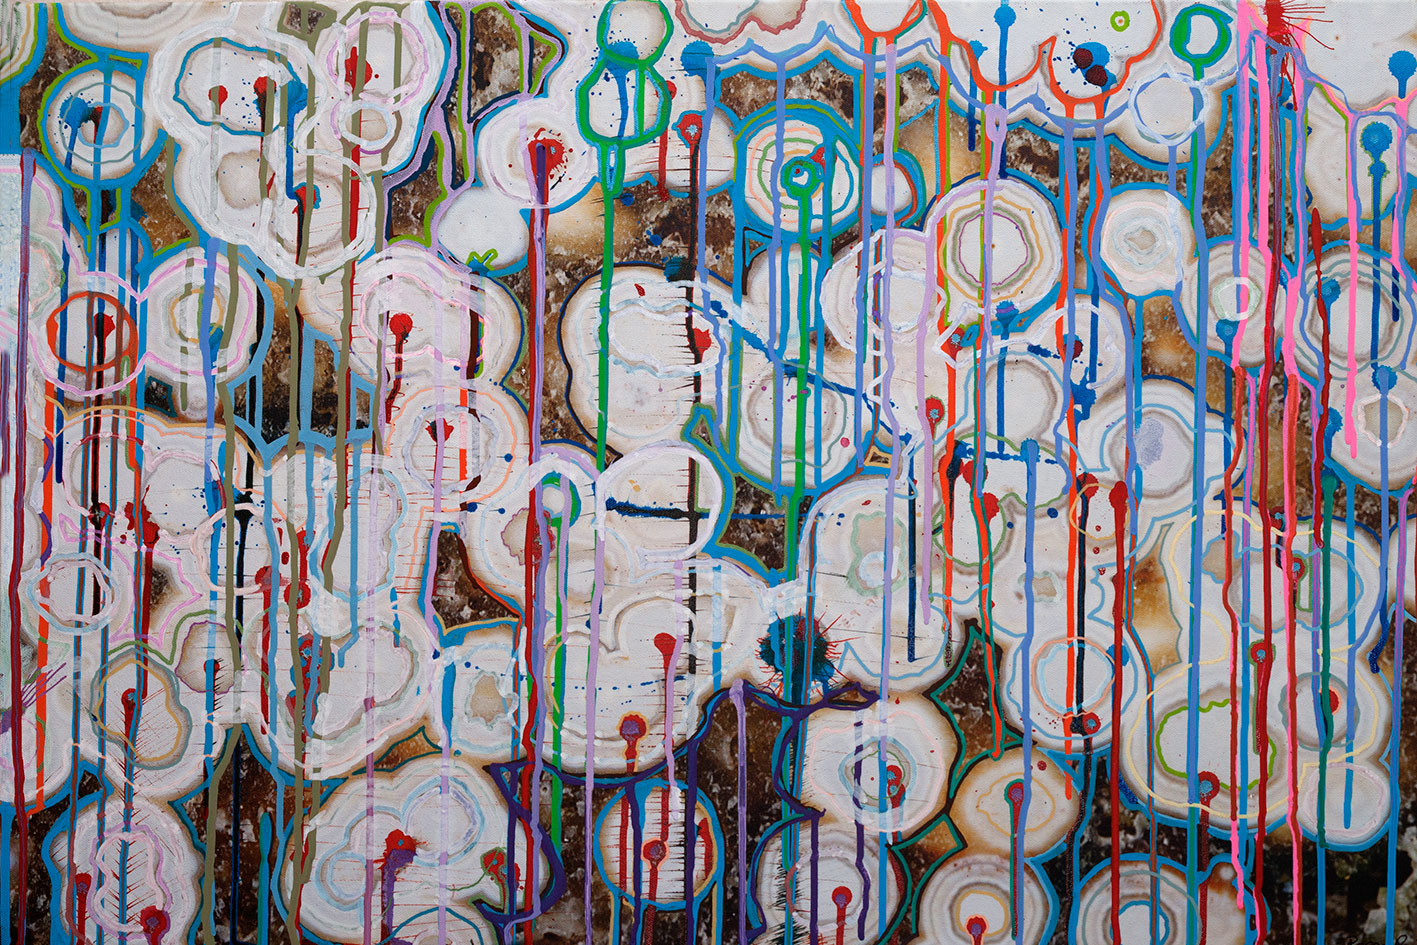 Hybrid Painting on Photograph by Roger Smith 2008